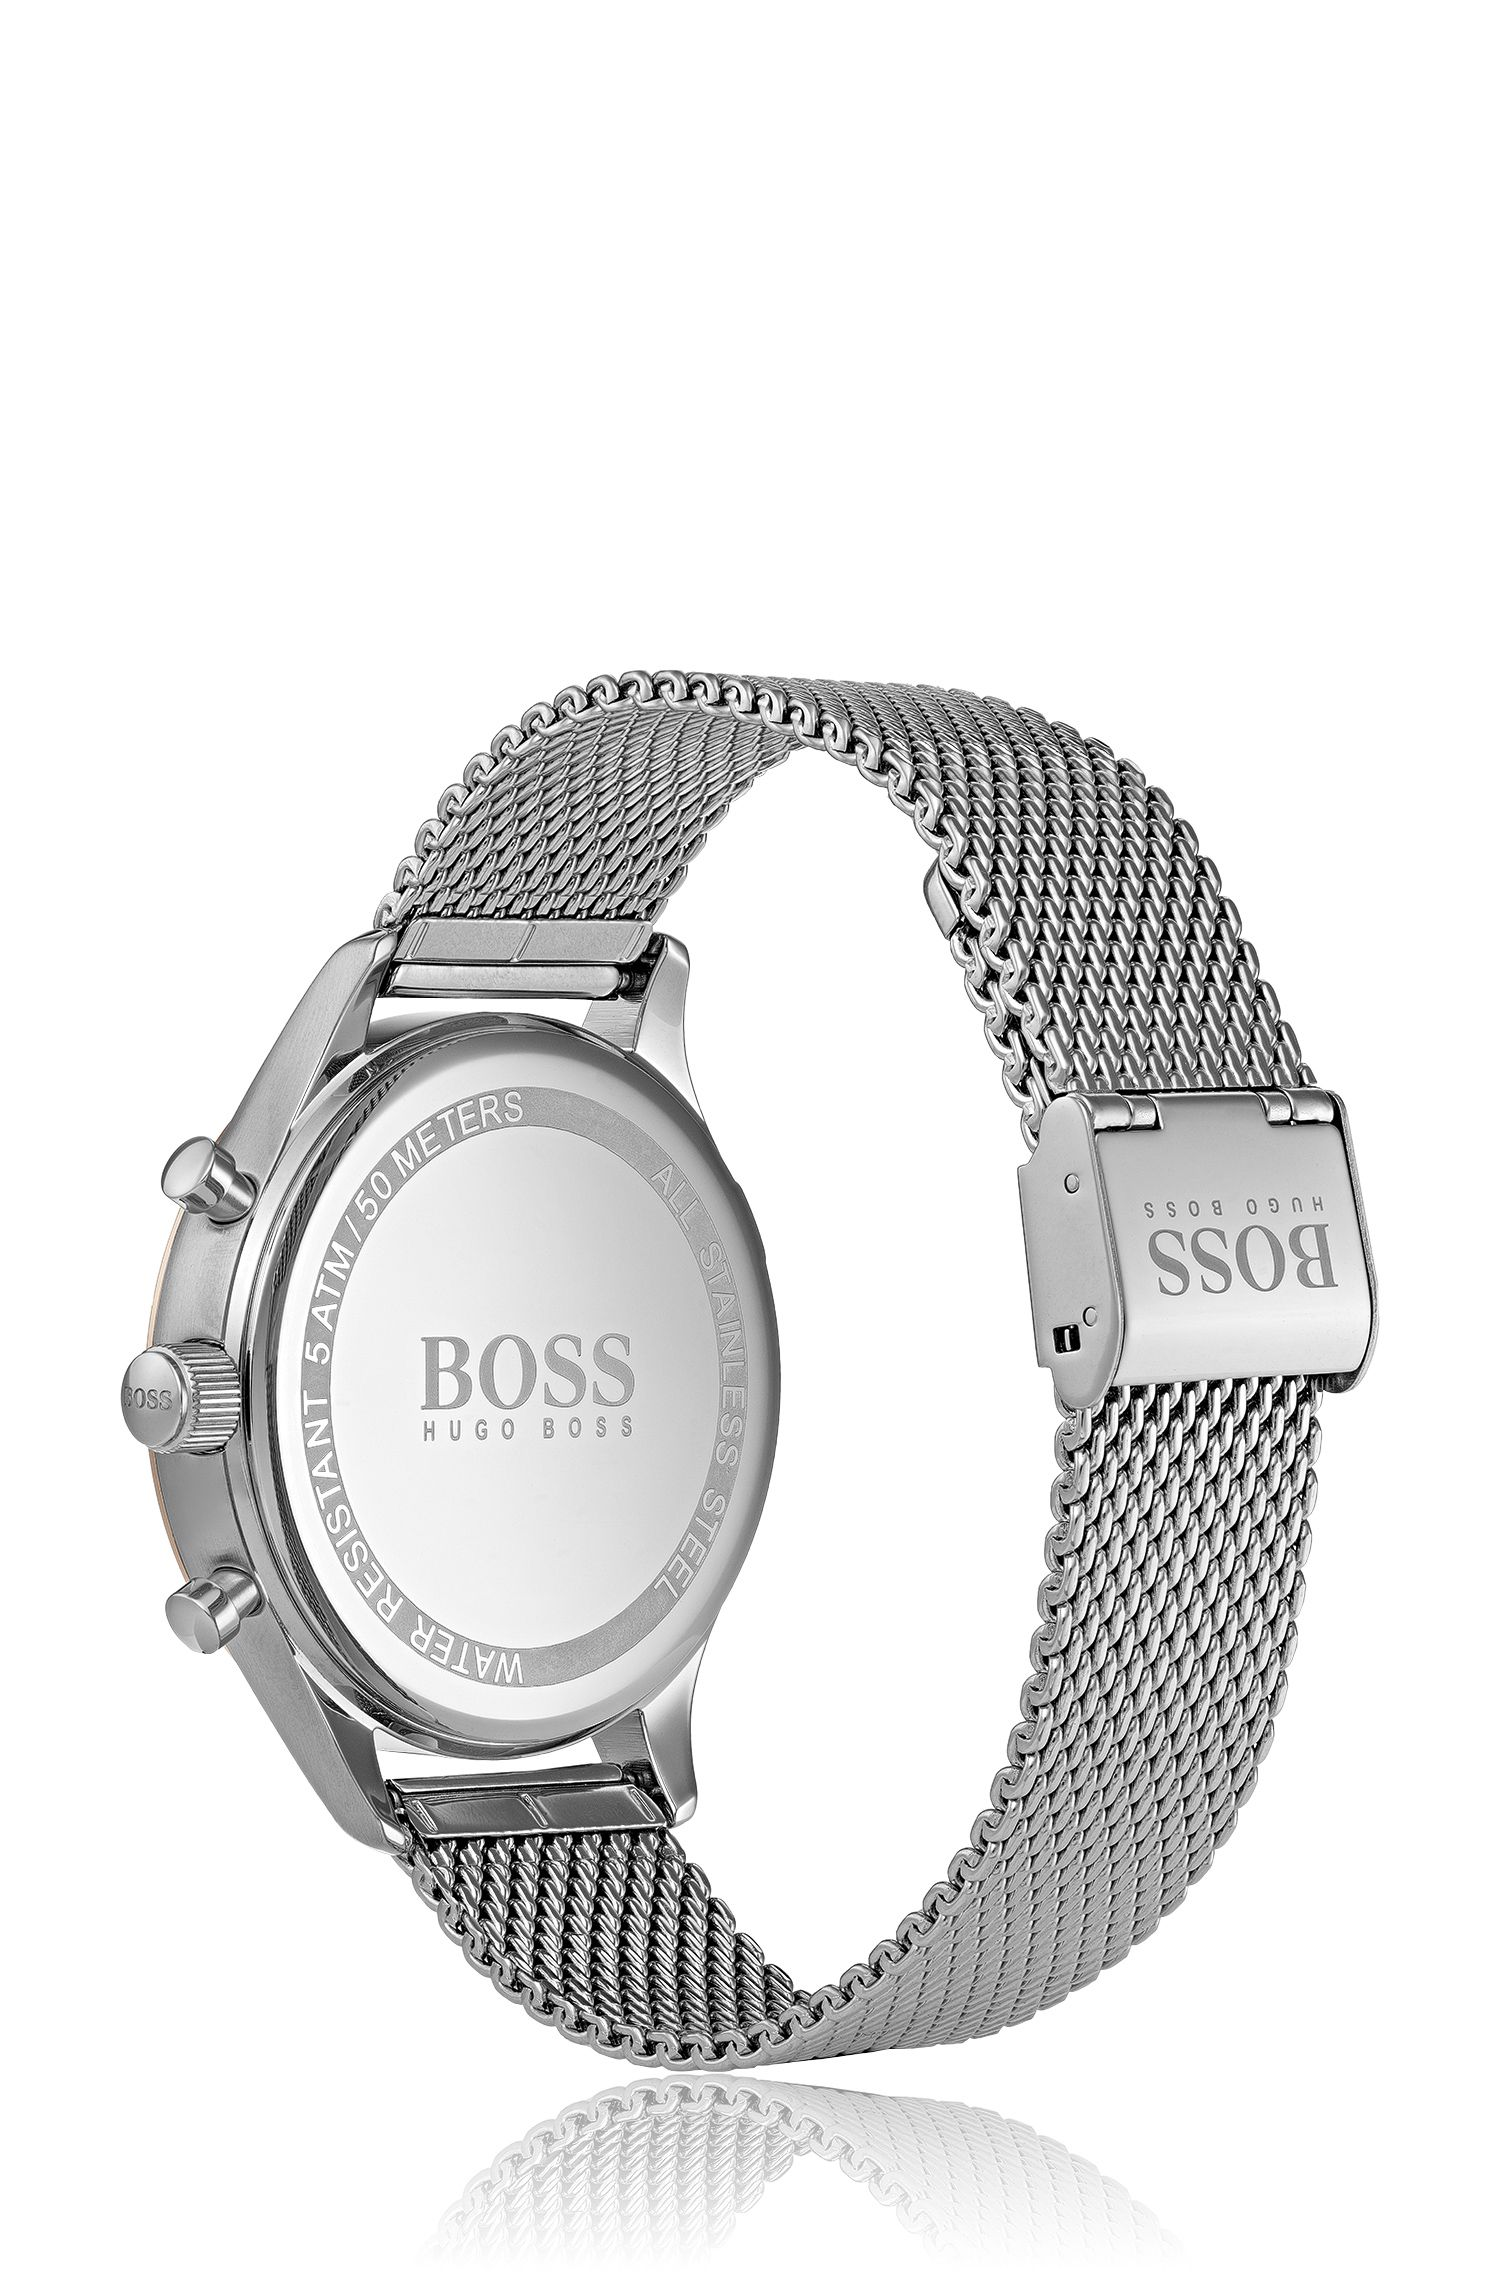 Mesh-bracelet watch with luminous hands